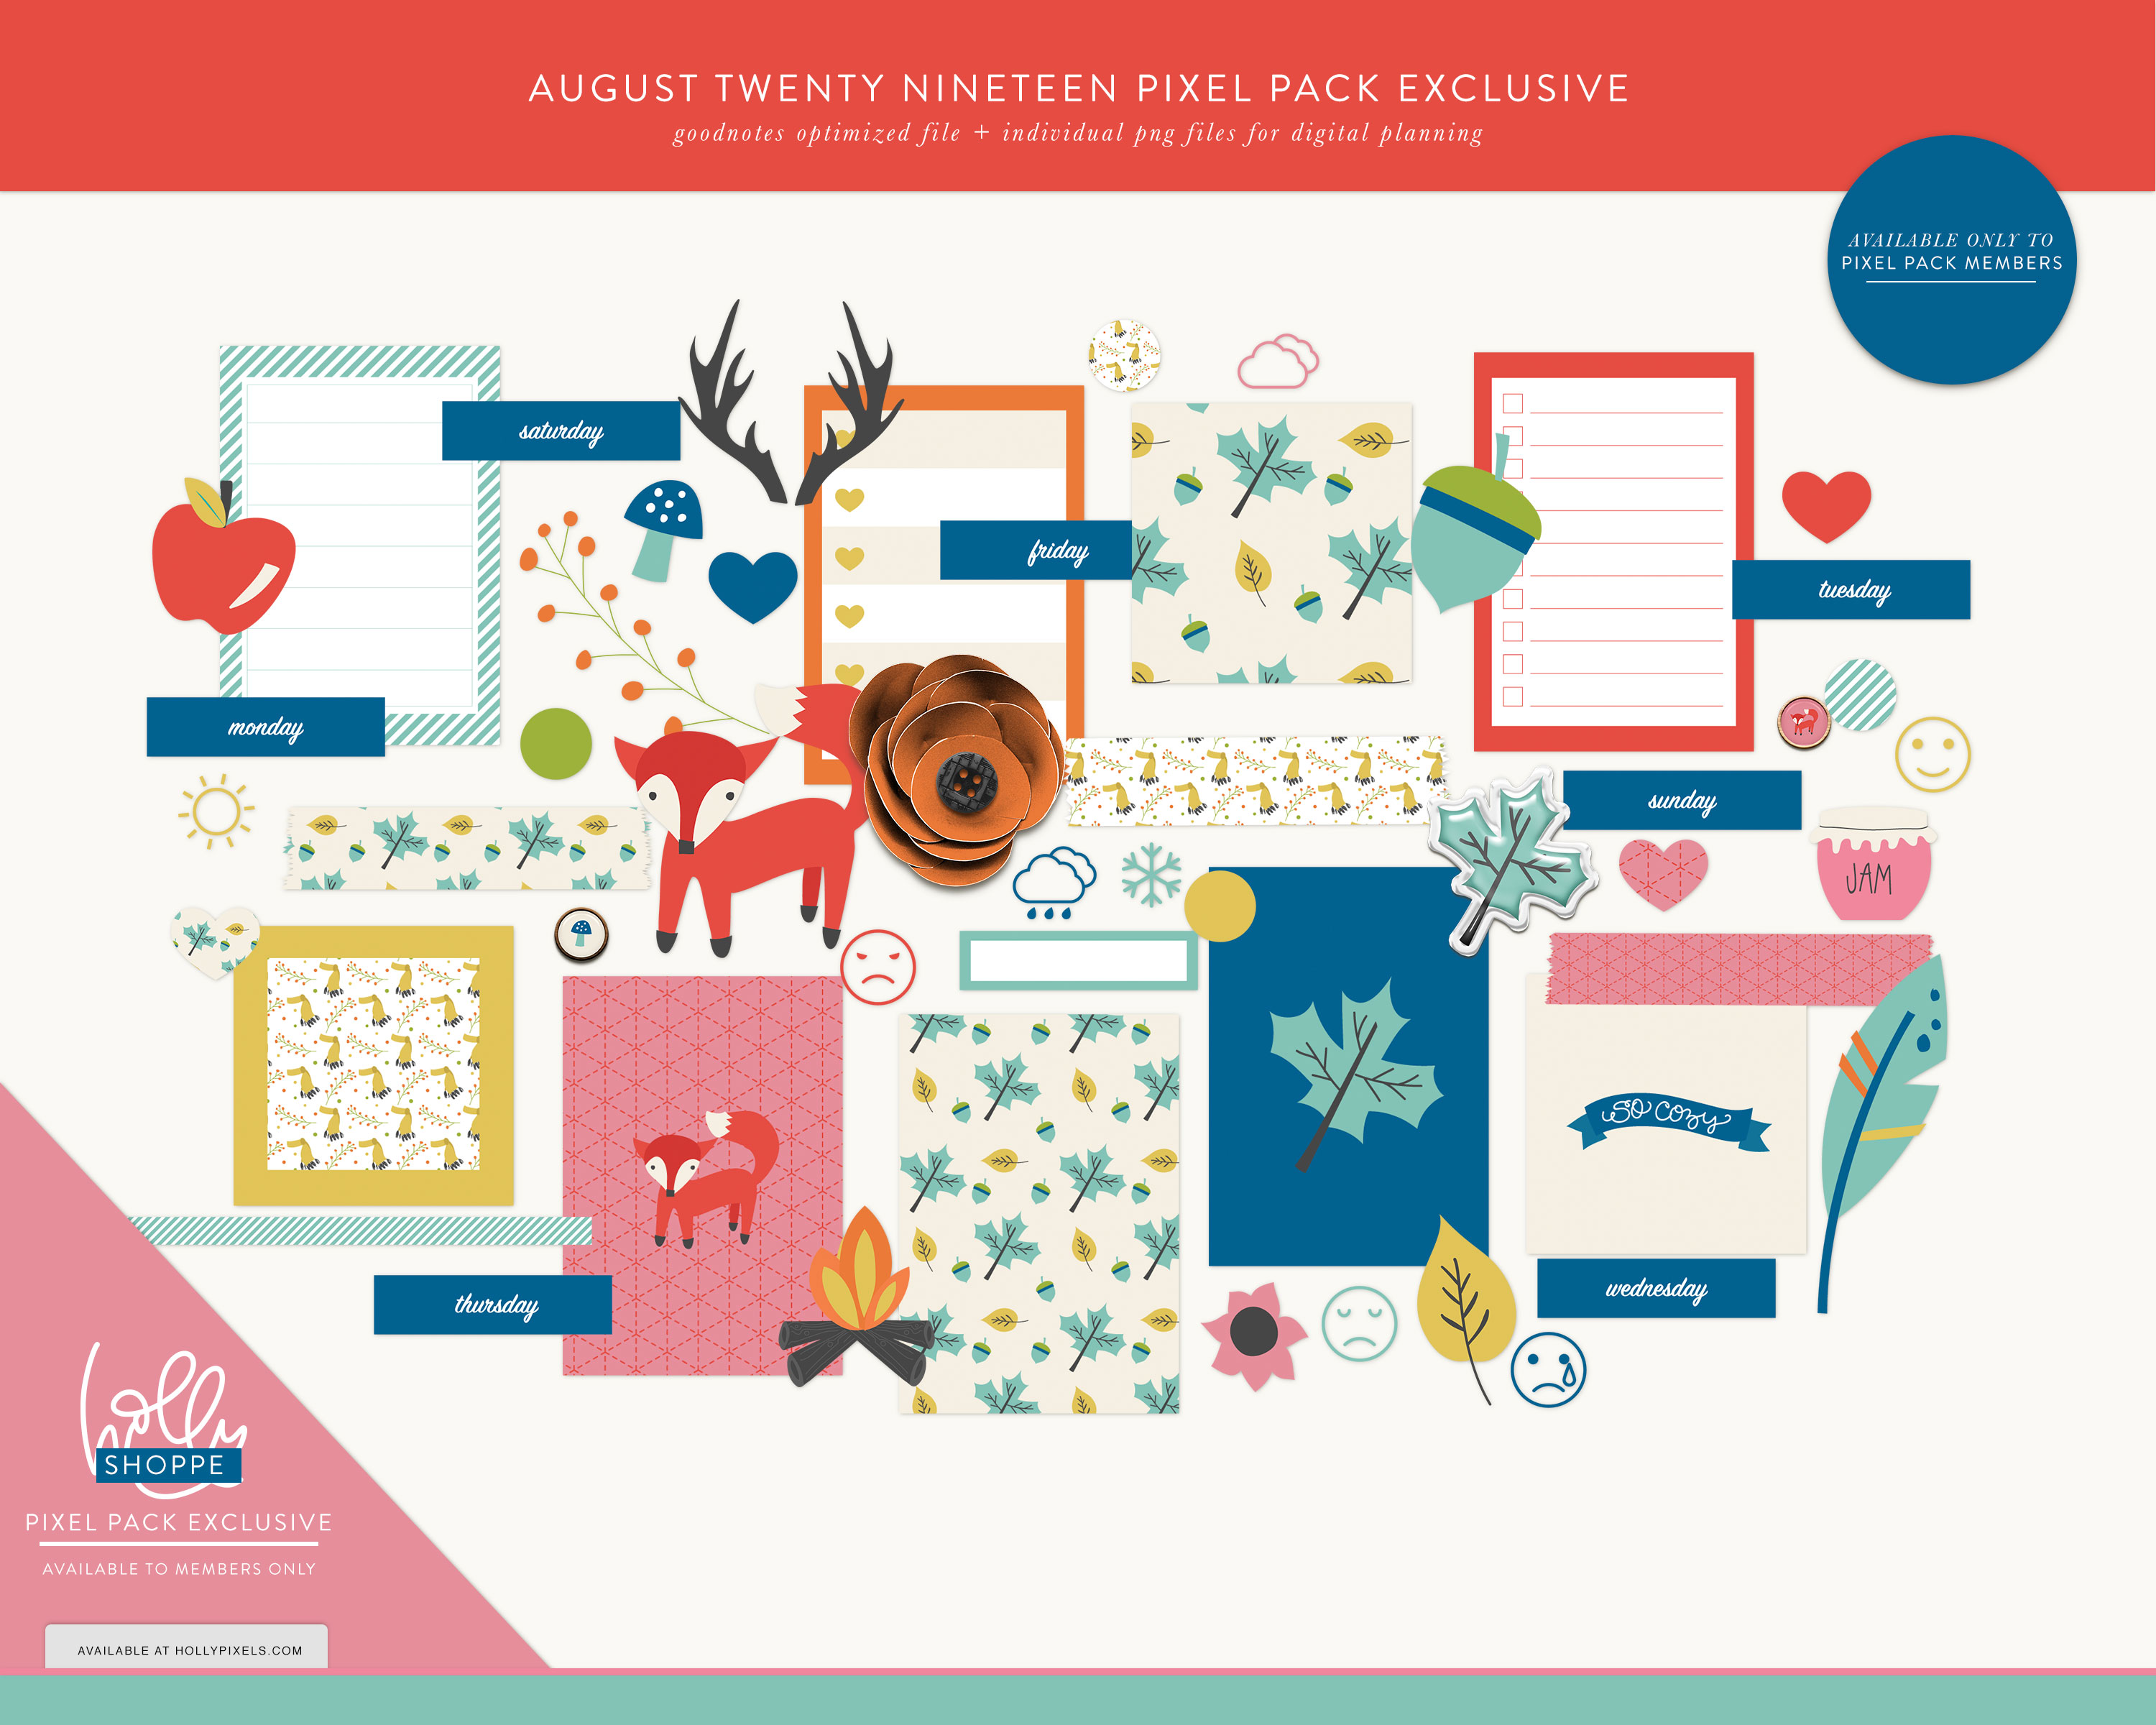 Pixel Pack Membership Launch Day for August 2019 5